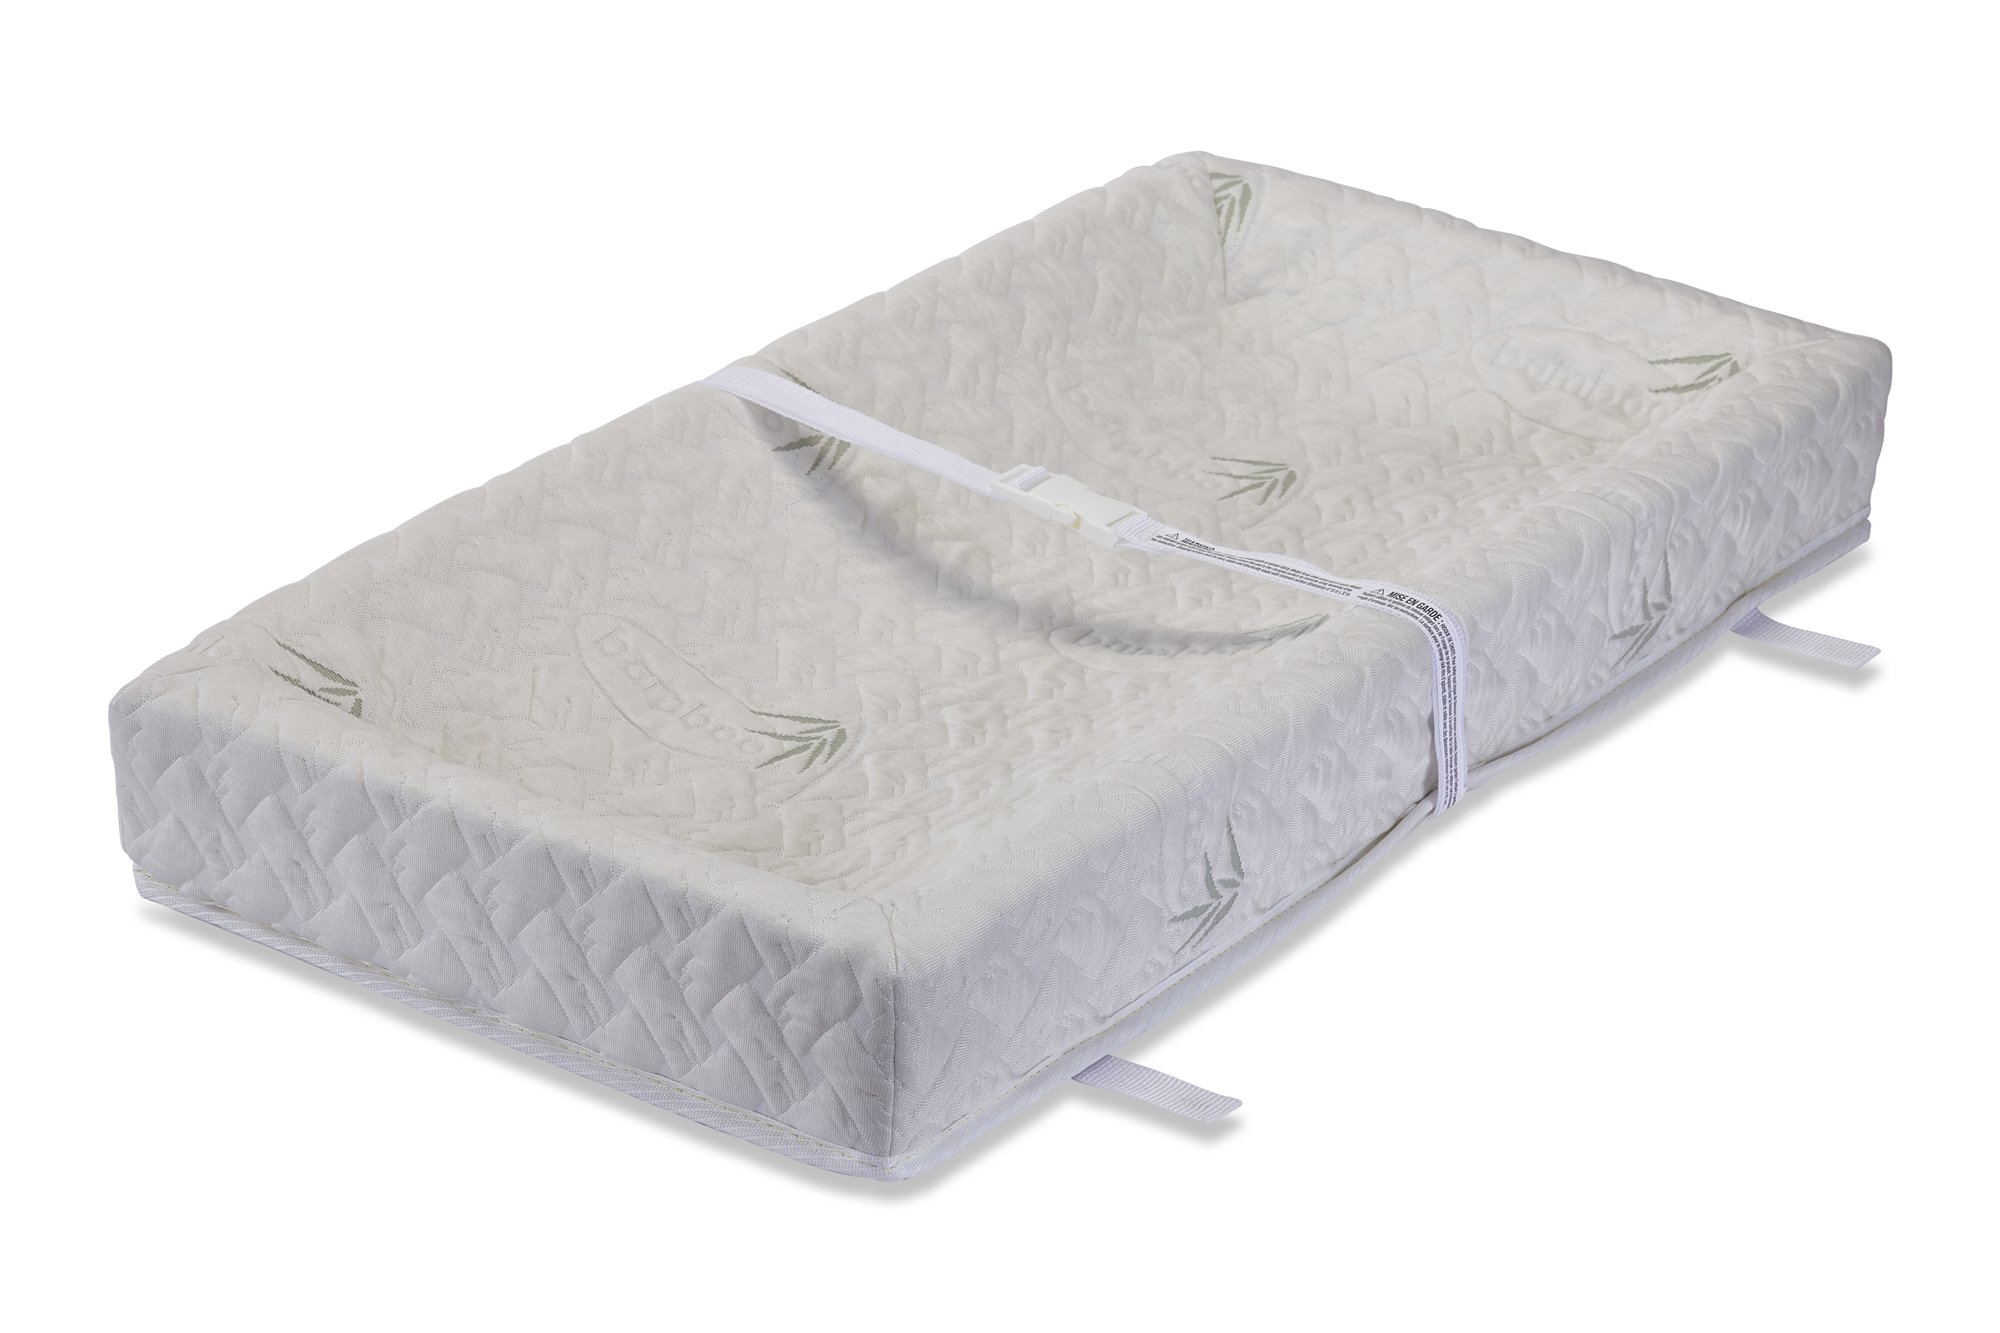 LA Baby 4 Sided Changing Pad w/Blended Viscose Bamboo Quilted Cover, 32'' - Made in USA. Easy to Clean w/Non-Skid Bottom, Safety Strap, Fits Standard Changing Tables for Best Infant Diaper Change